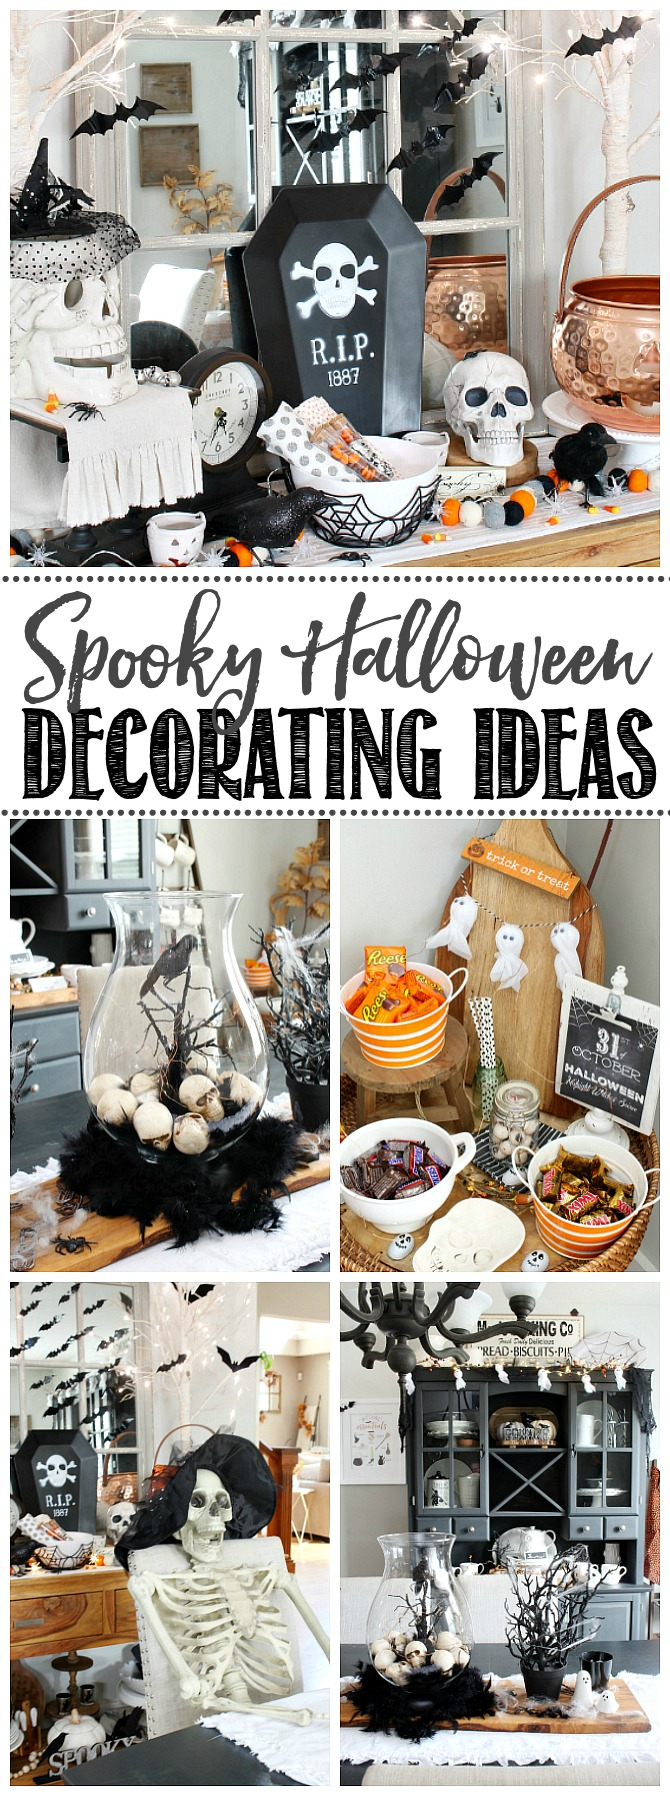 Collage of spooky Halloween decorating ideas.